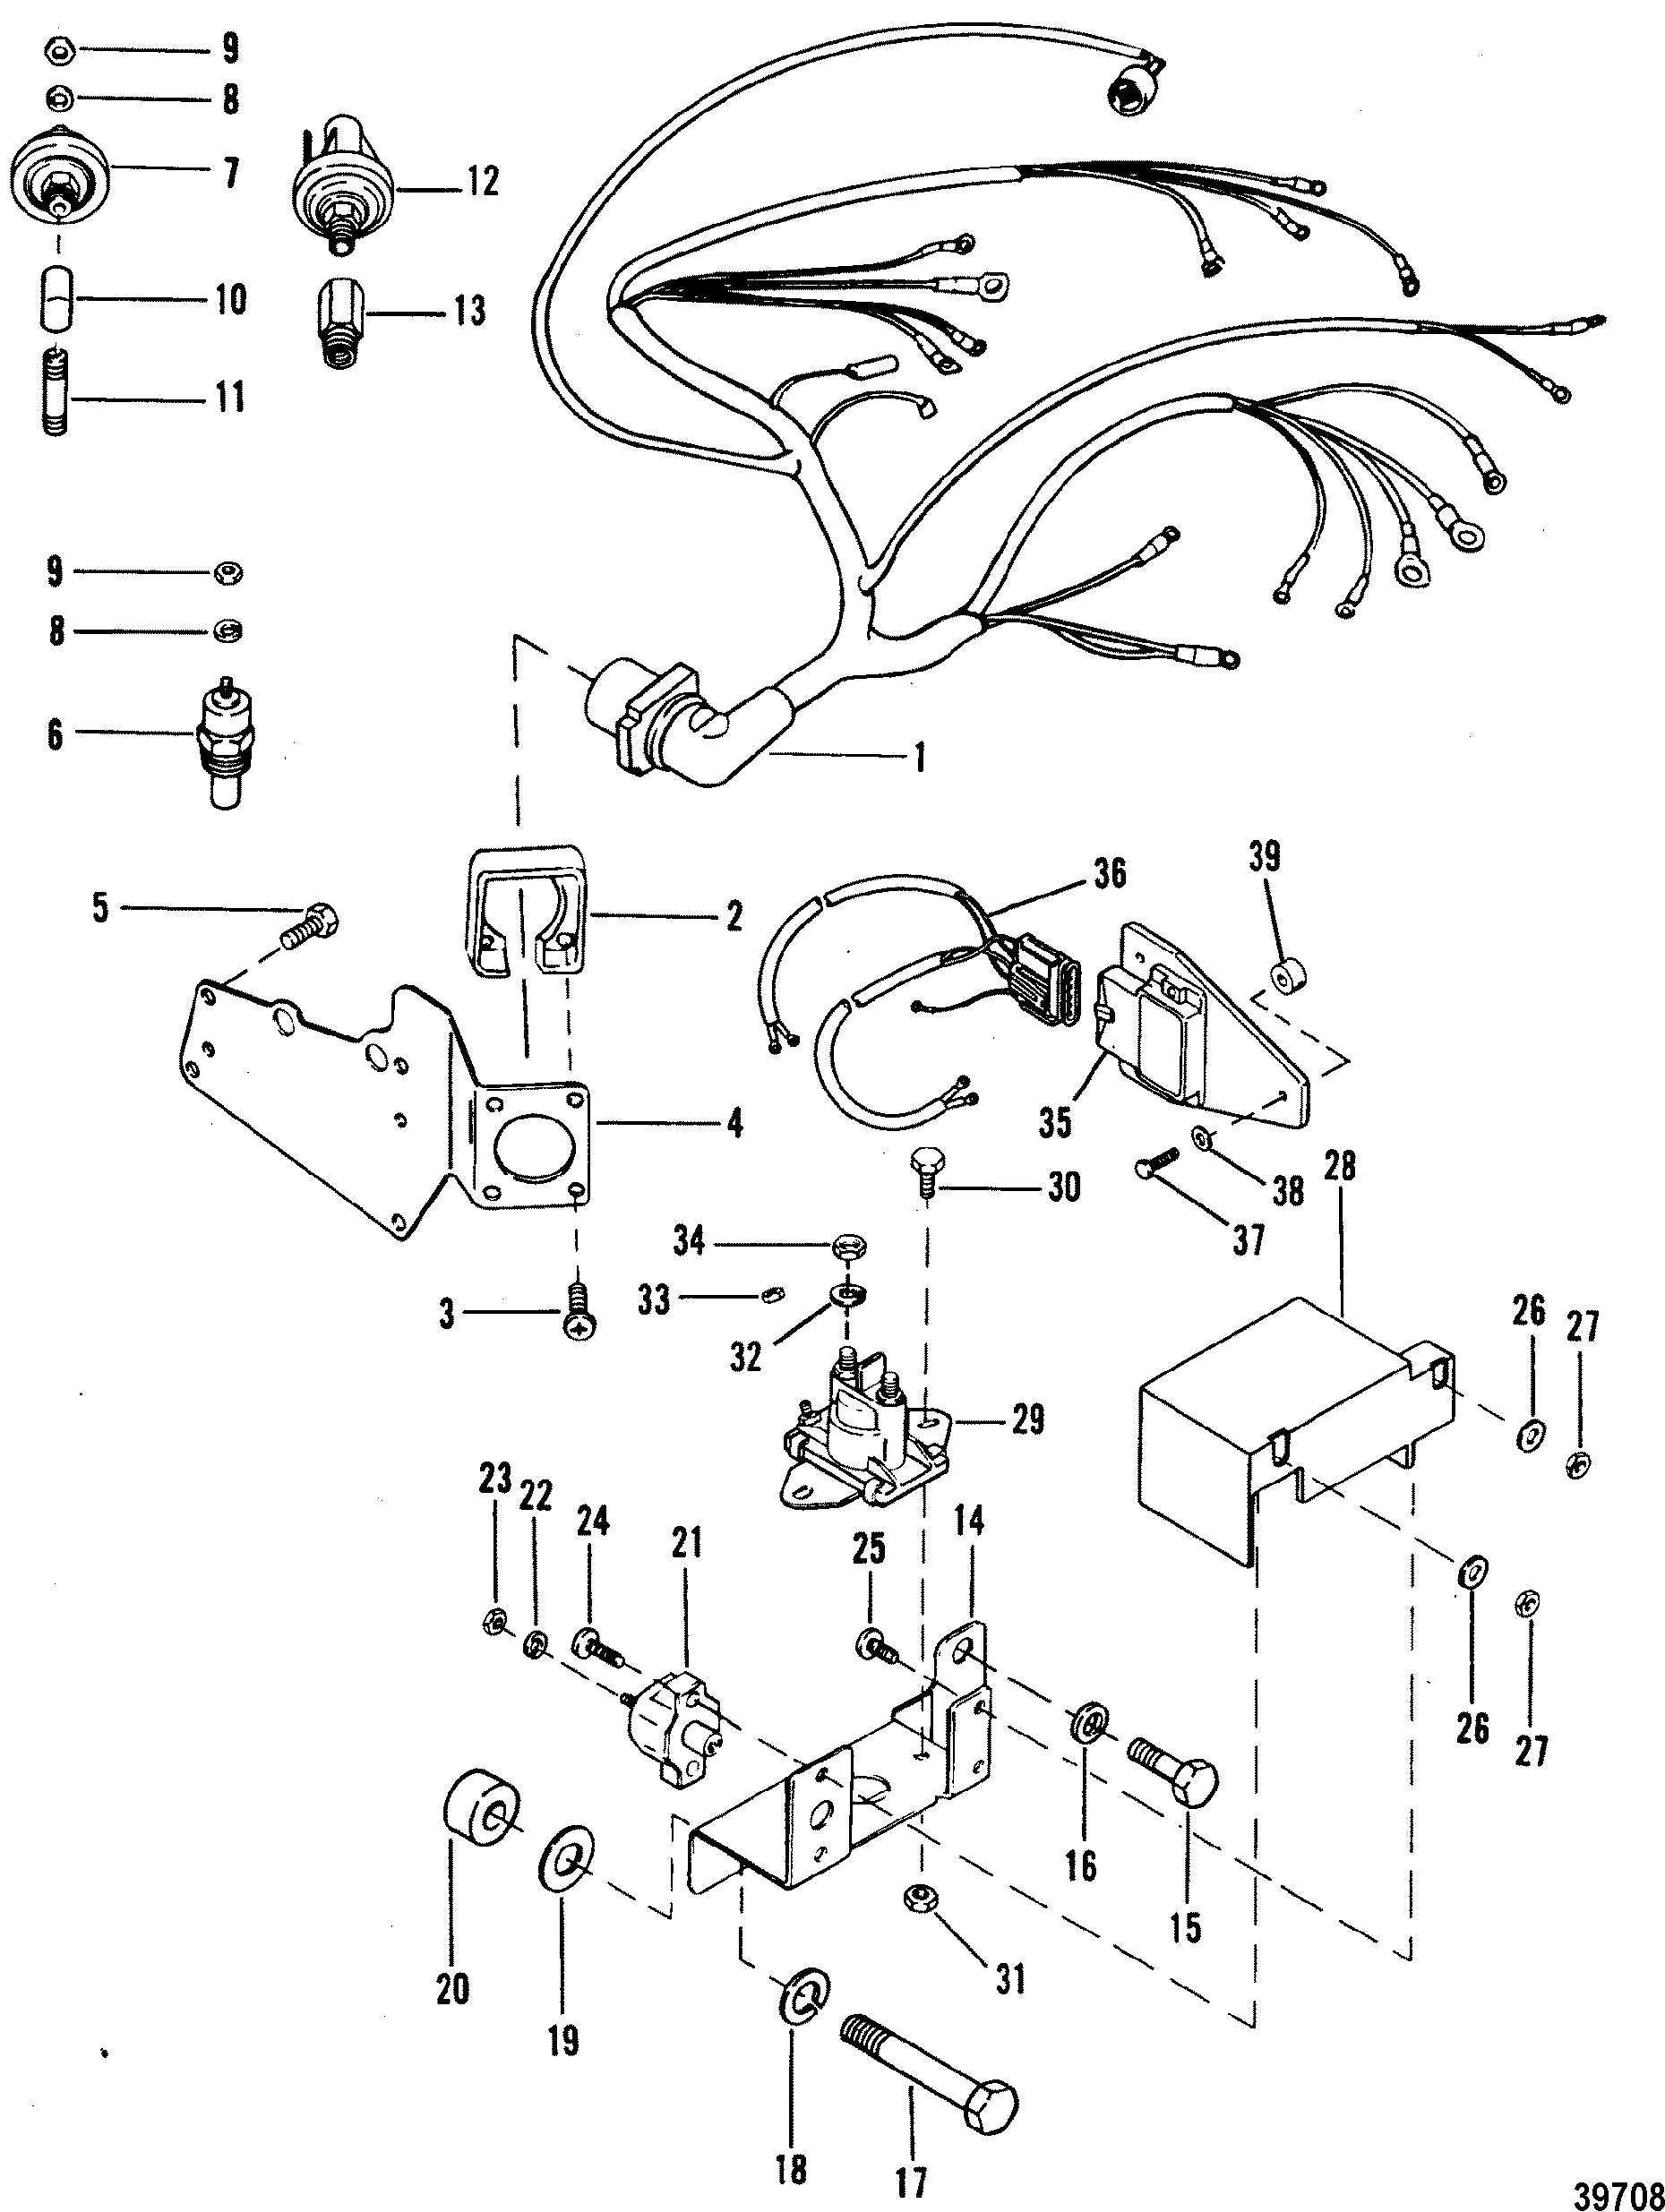 Wiring harness and electrical ponents for mercruiser 4 3l 4 3lx rh jamestowndistributors marine engine wiring harness ford wiring harness diagrams